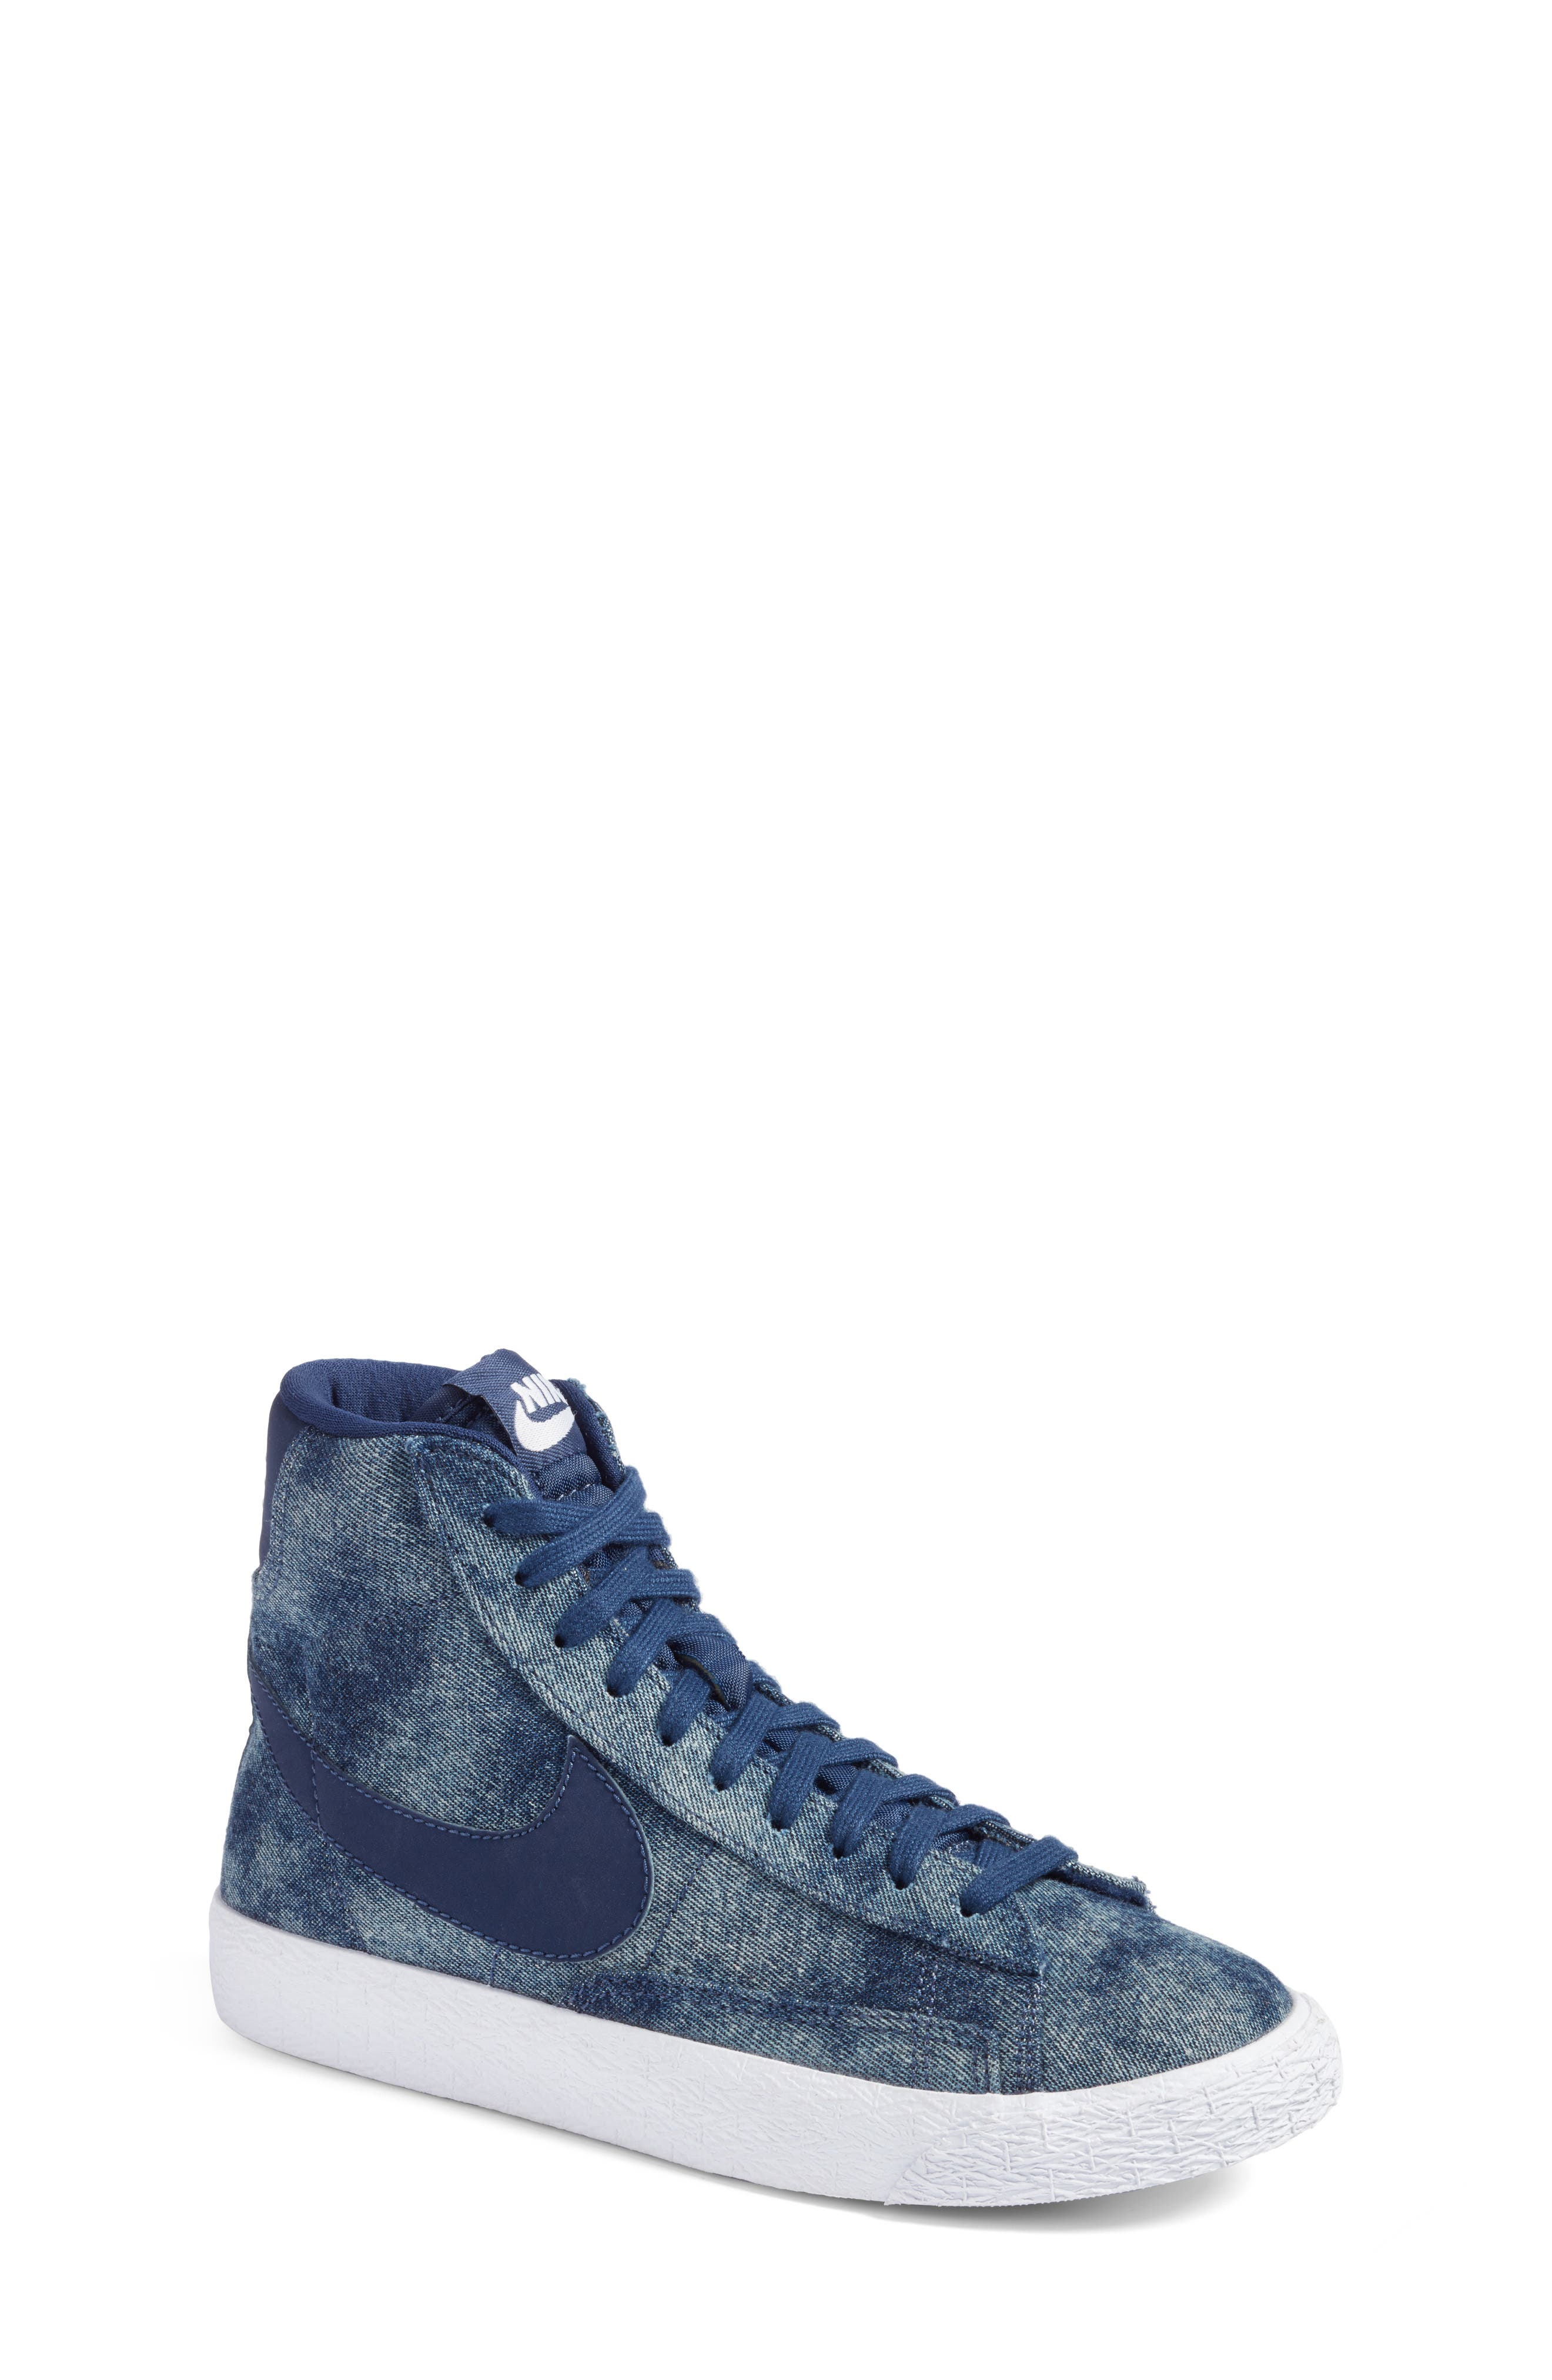 Nike Blazer Mid SE High Top Sneaker (Big Kid)